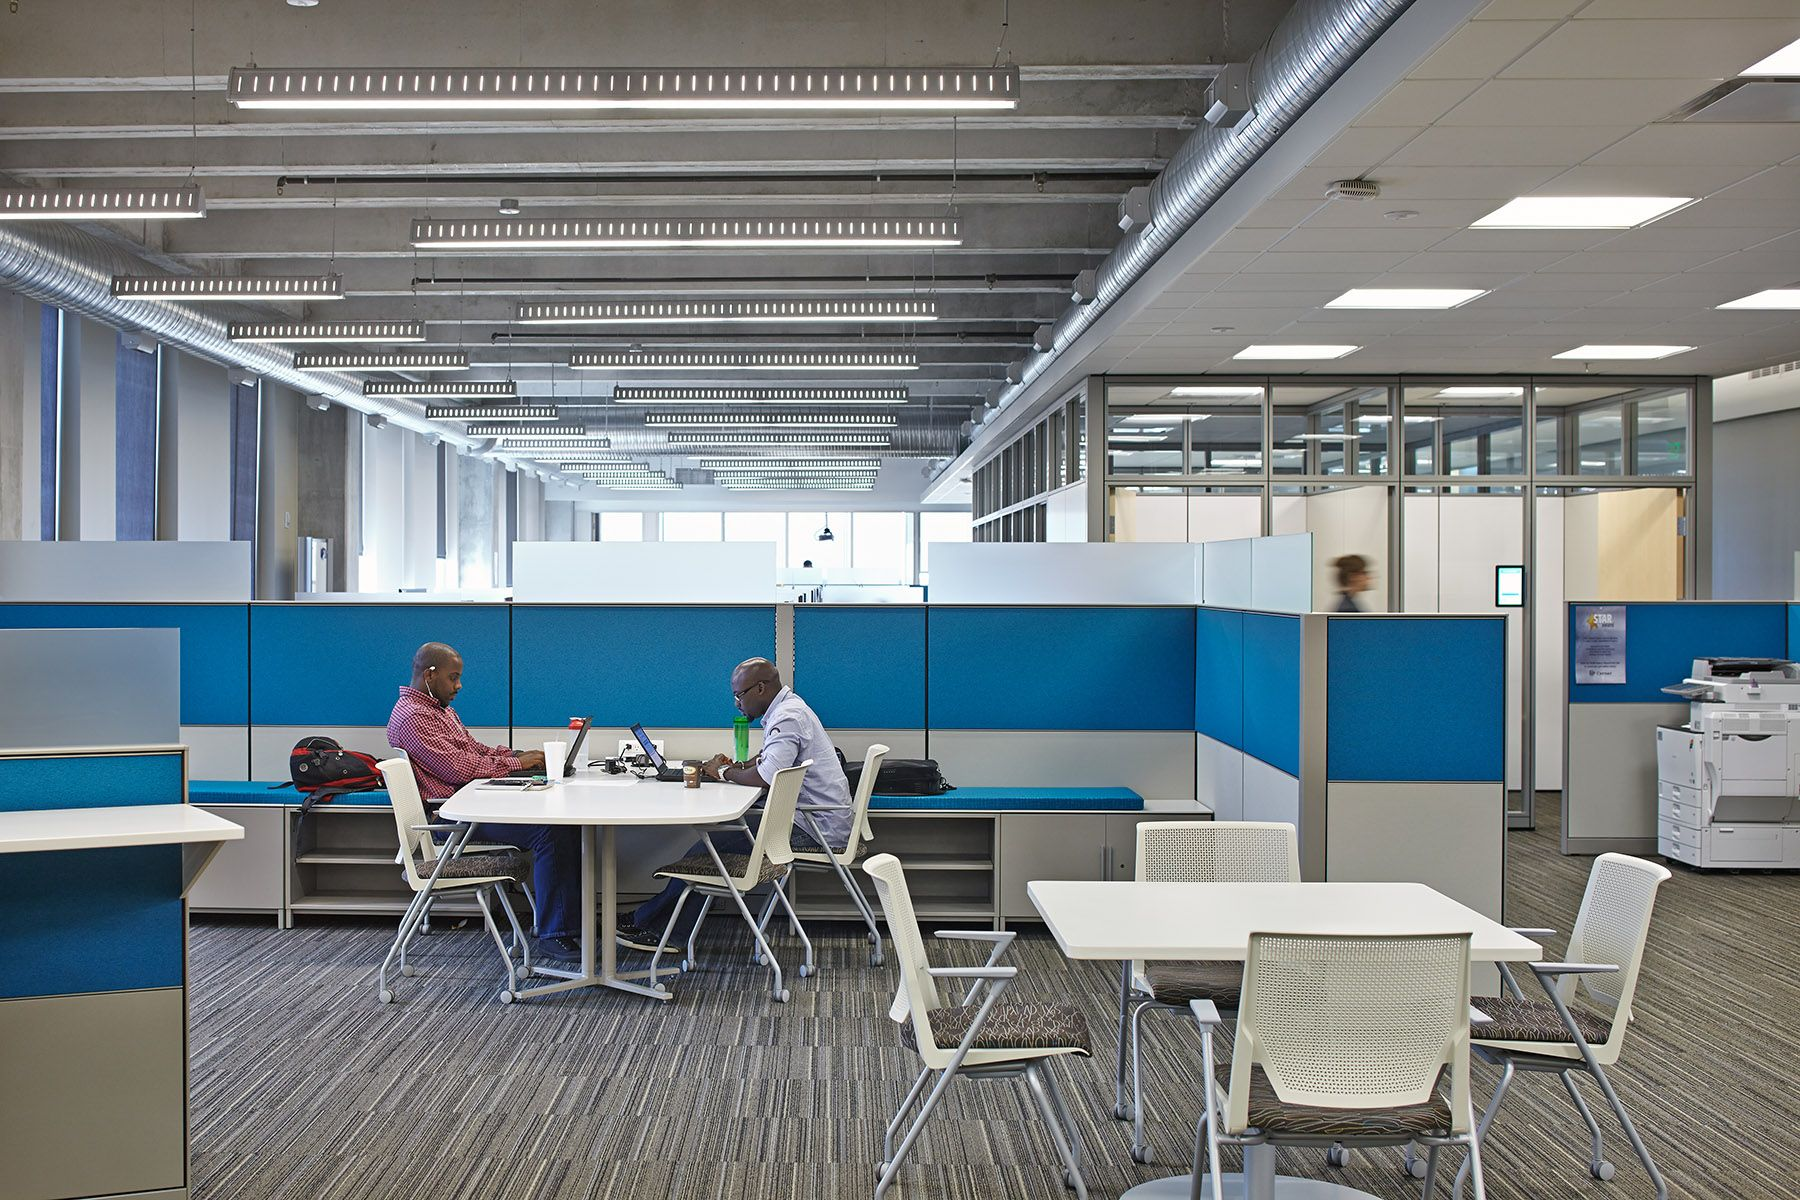 Gould Evans Cerner Continuous Campus Workplace Design